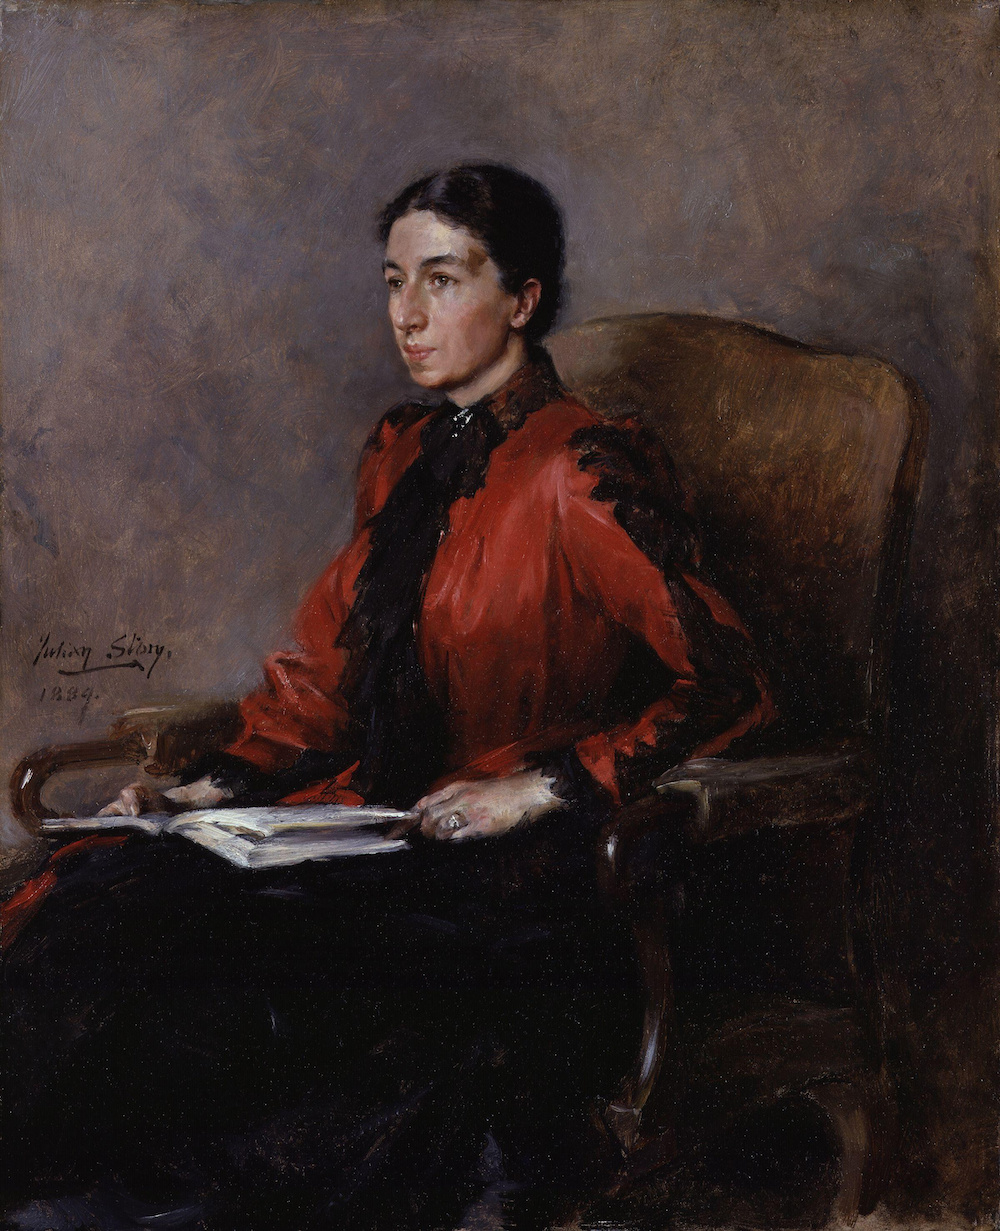 A portrait of Mary Augusta Ward seated, wearing a red dress and holding a book.